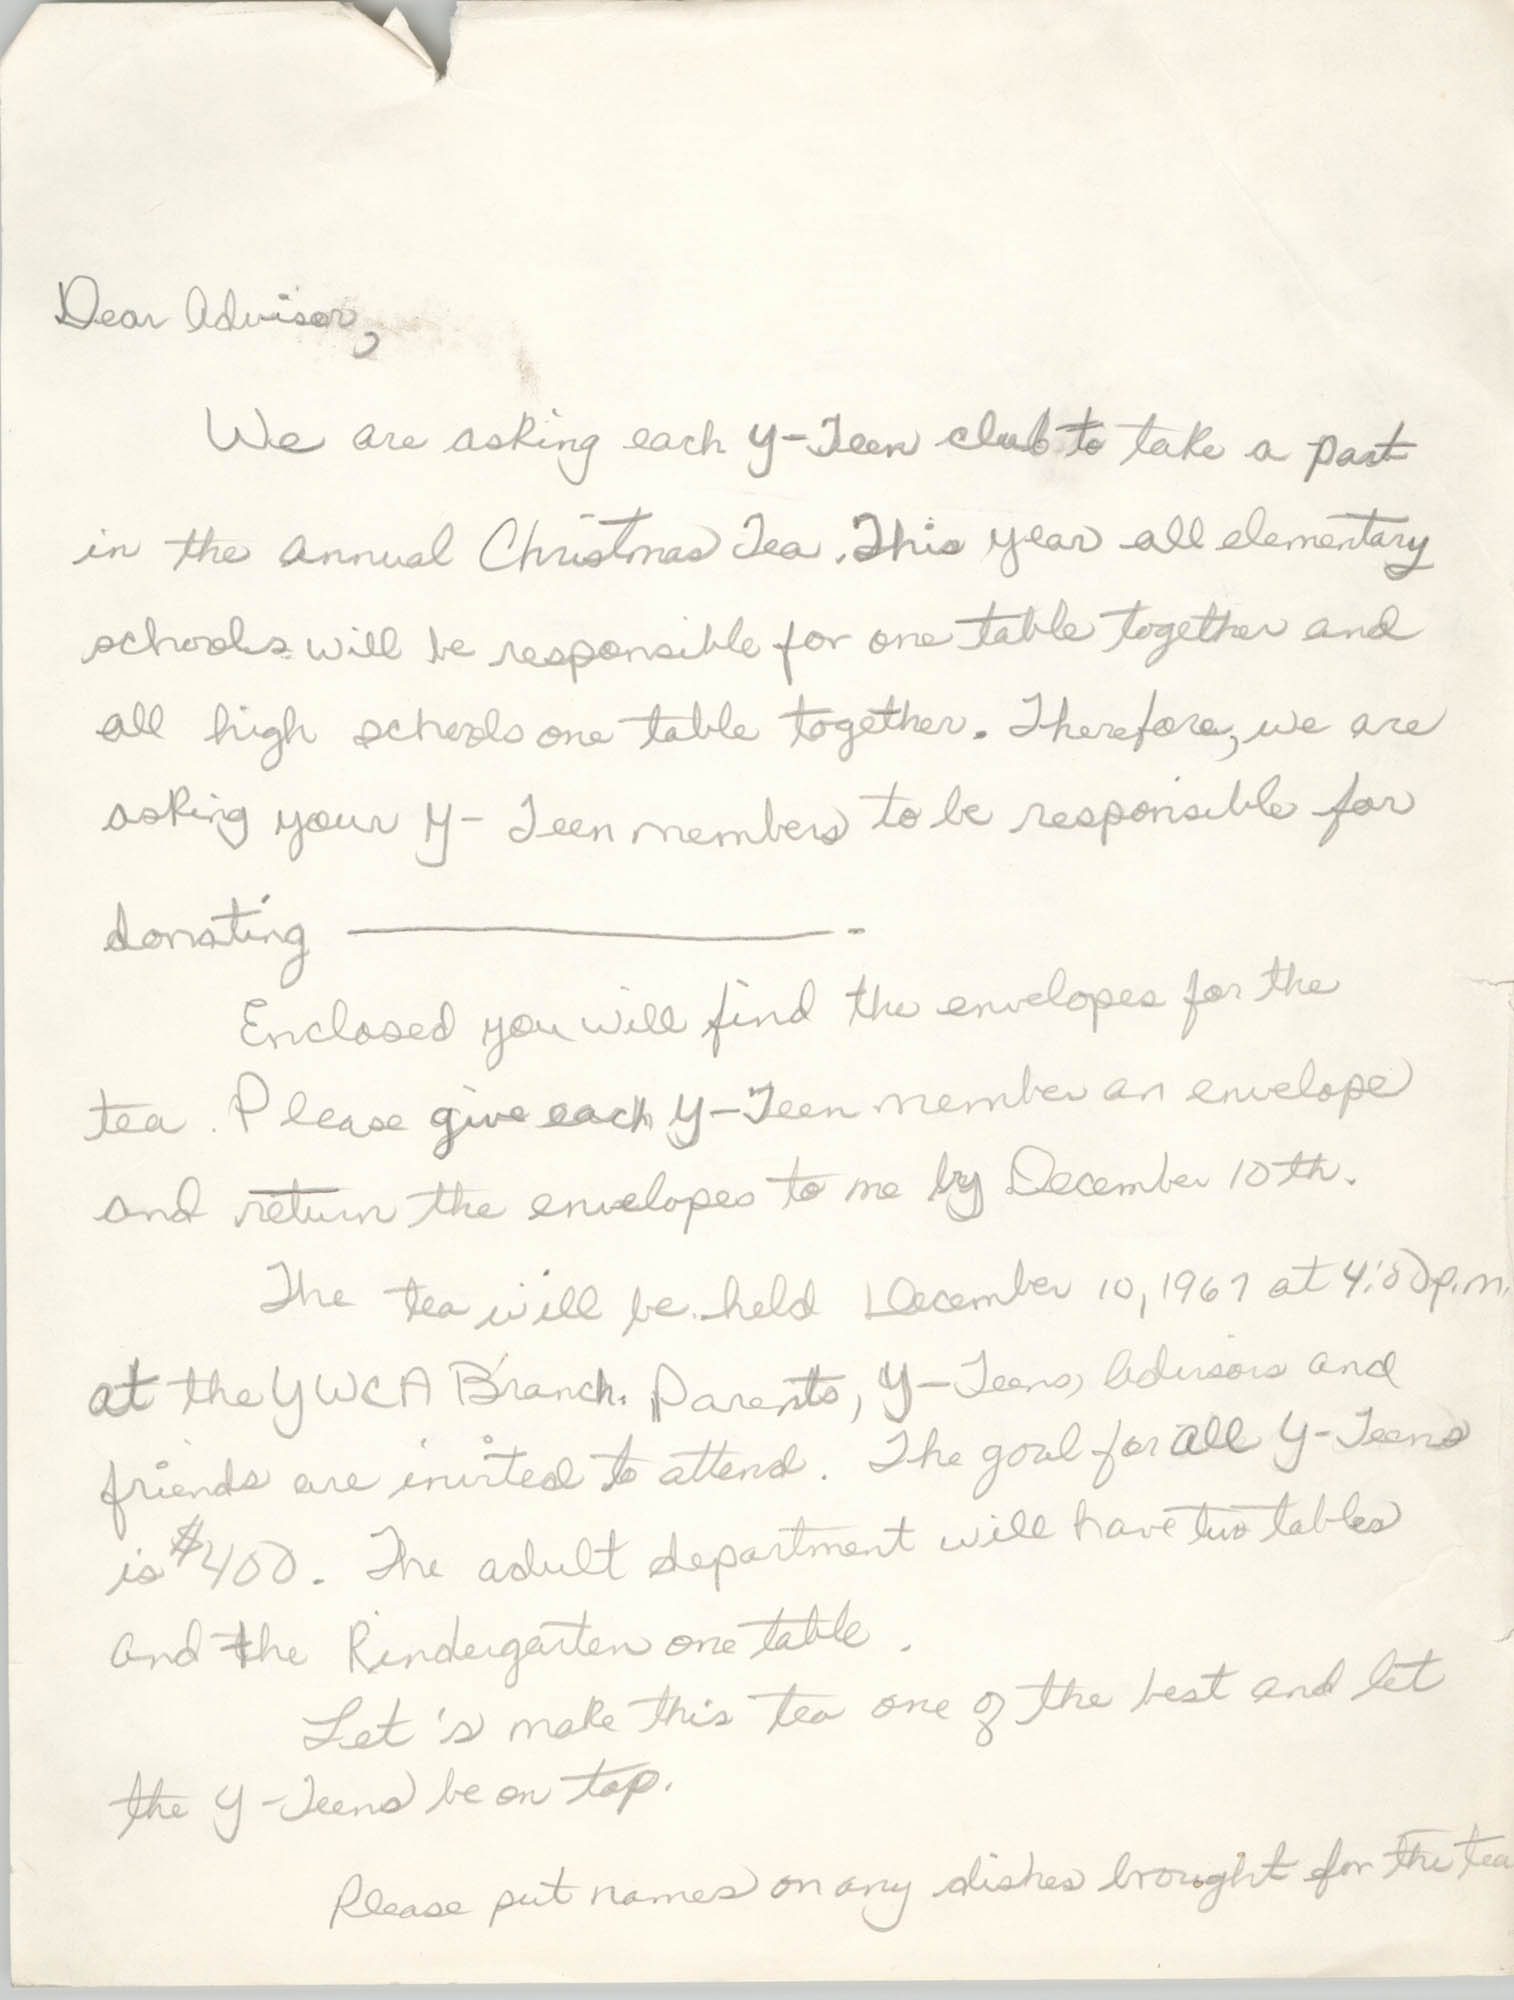 Letter from Coming Street Y.W.C.A. to Advisors, 1967